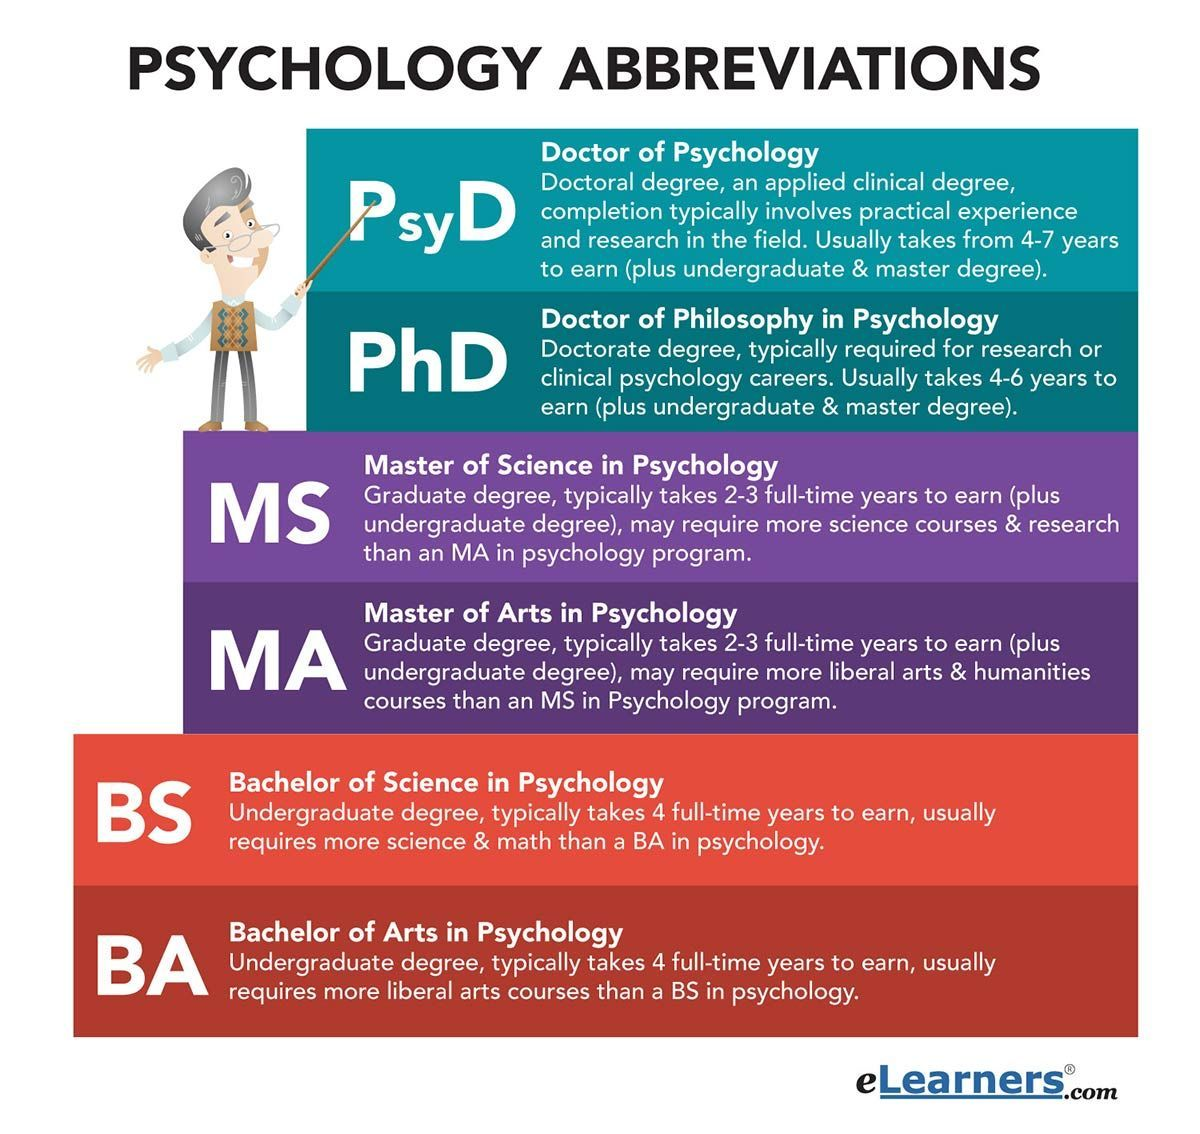 See all of the different psychology abbreviations